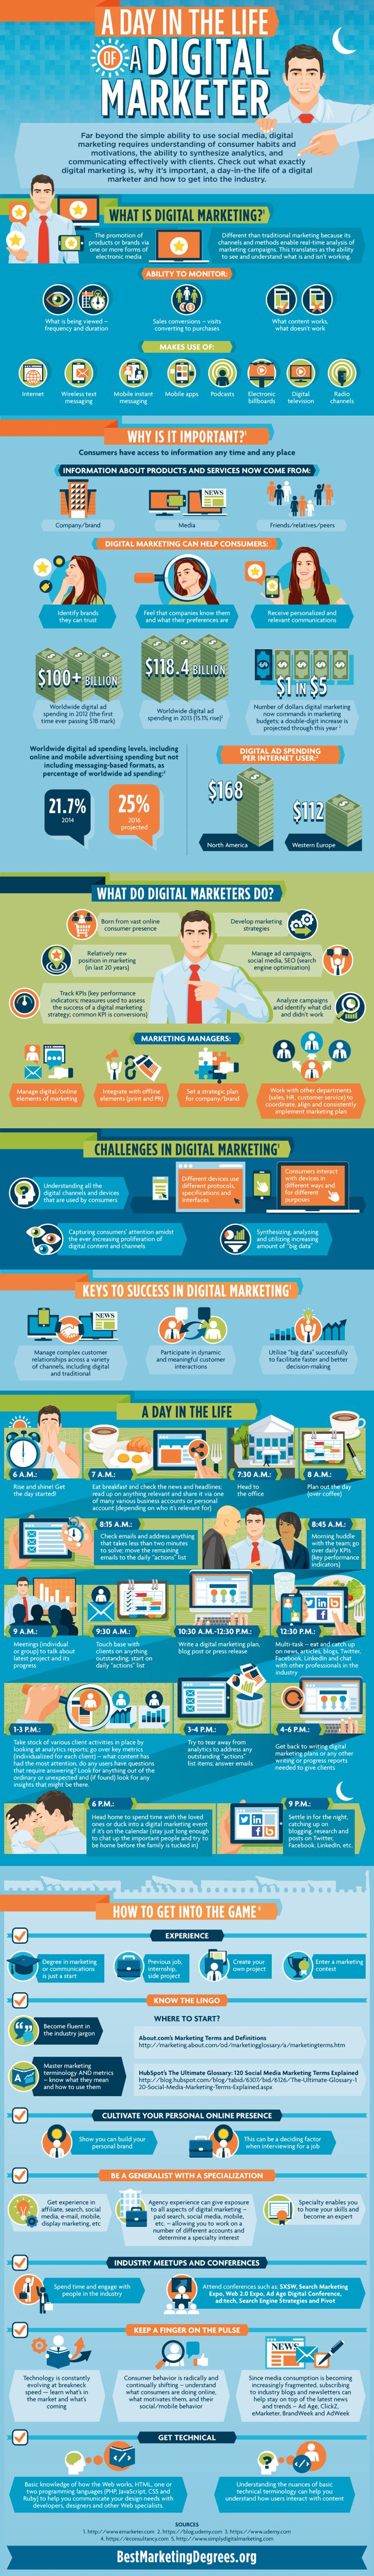 Digital Marketer #infographic A Digital Marketer engage in a lot of digital marketing activities to attain her objectives.